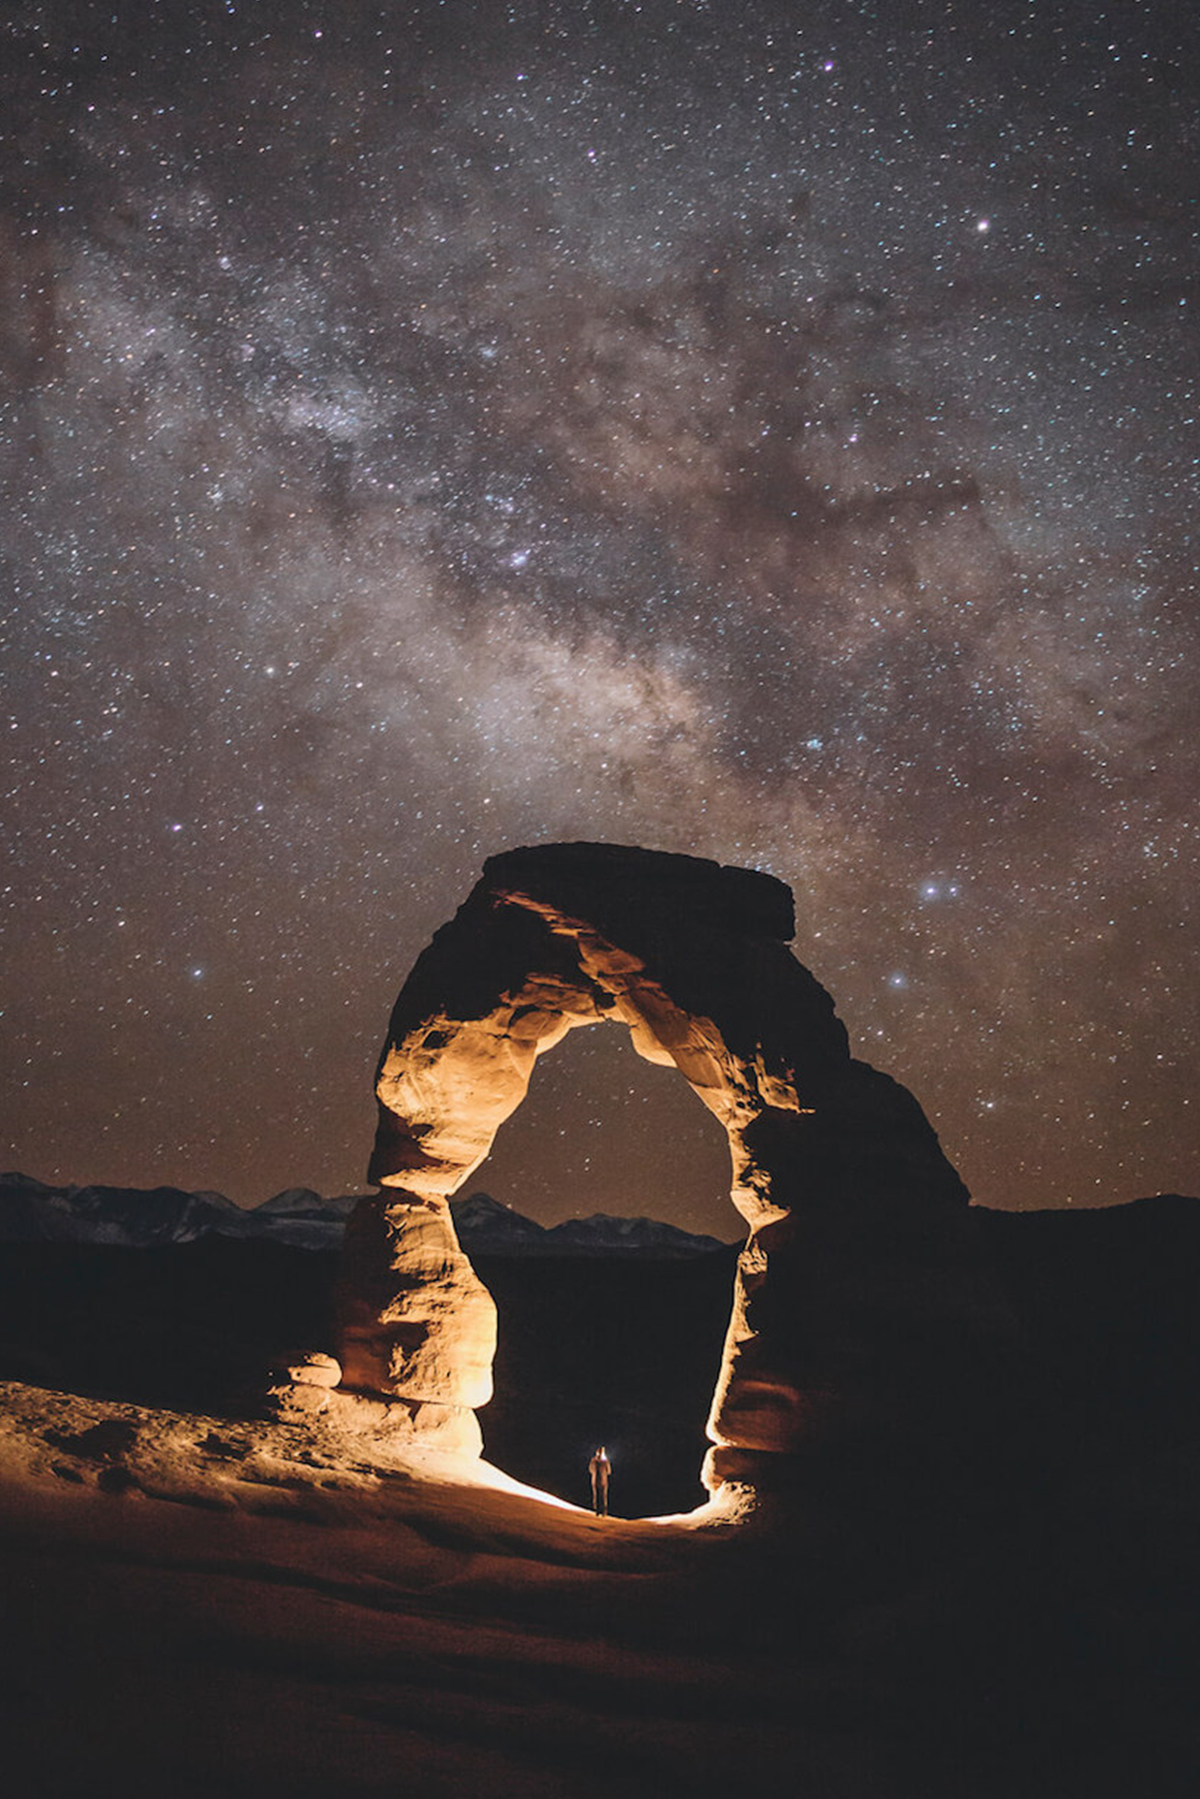 Photo by Garrett King of solitary arch under starry night sky